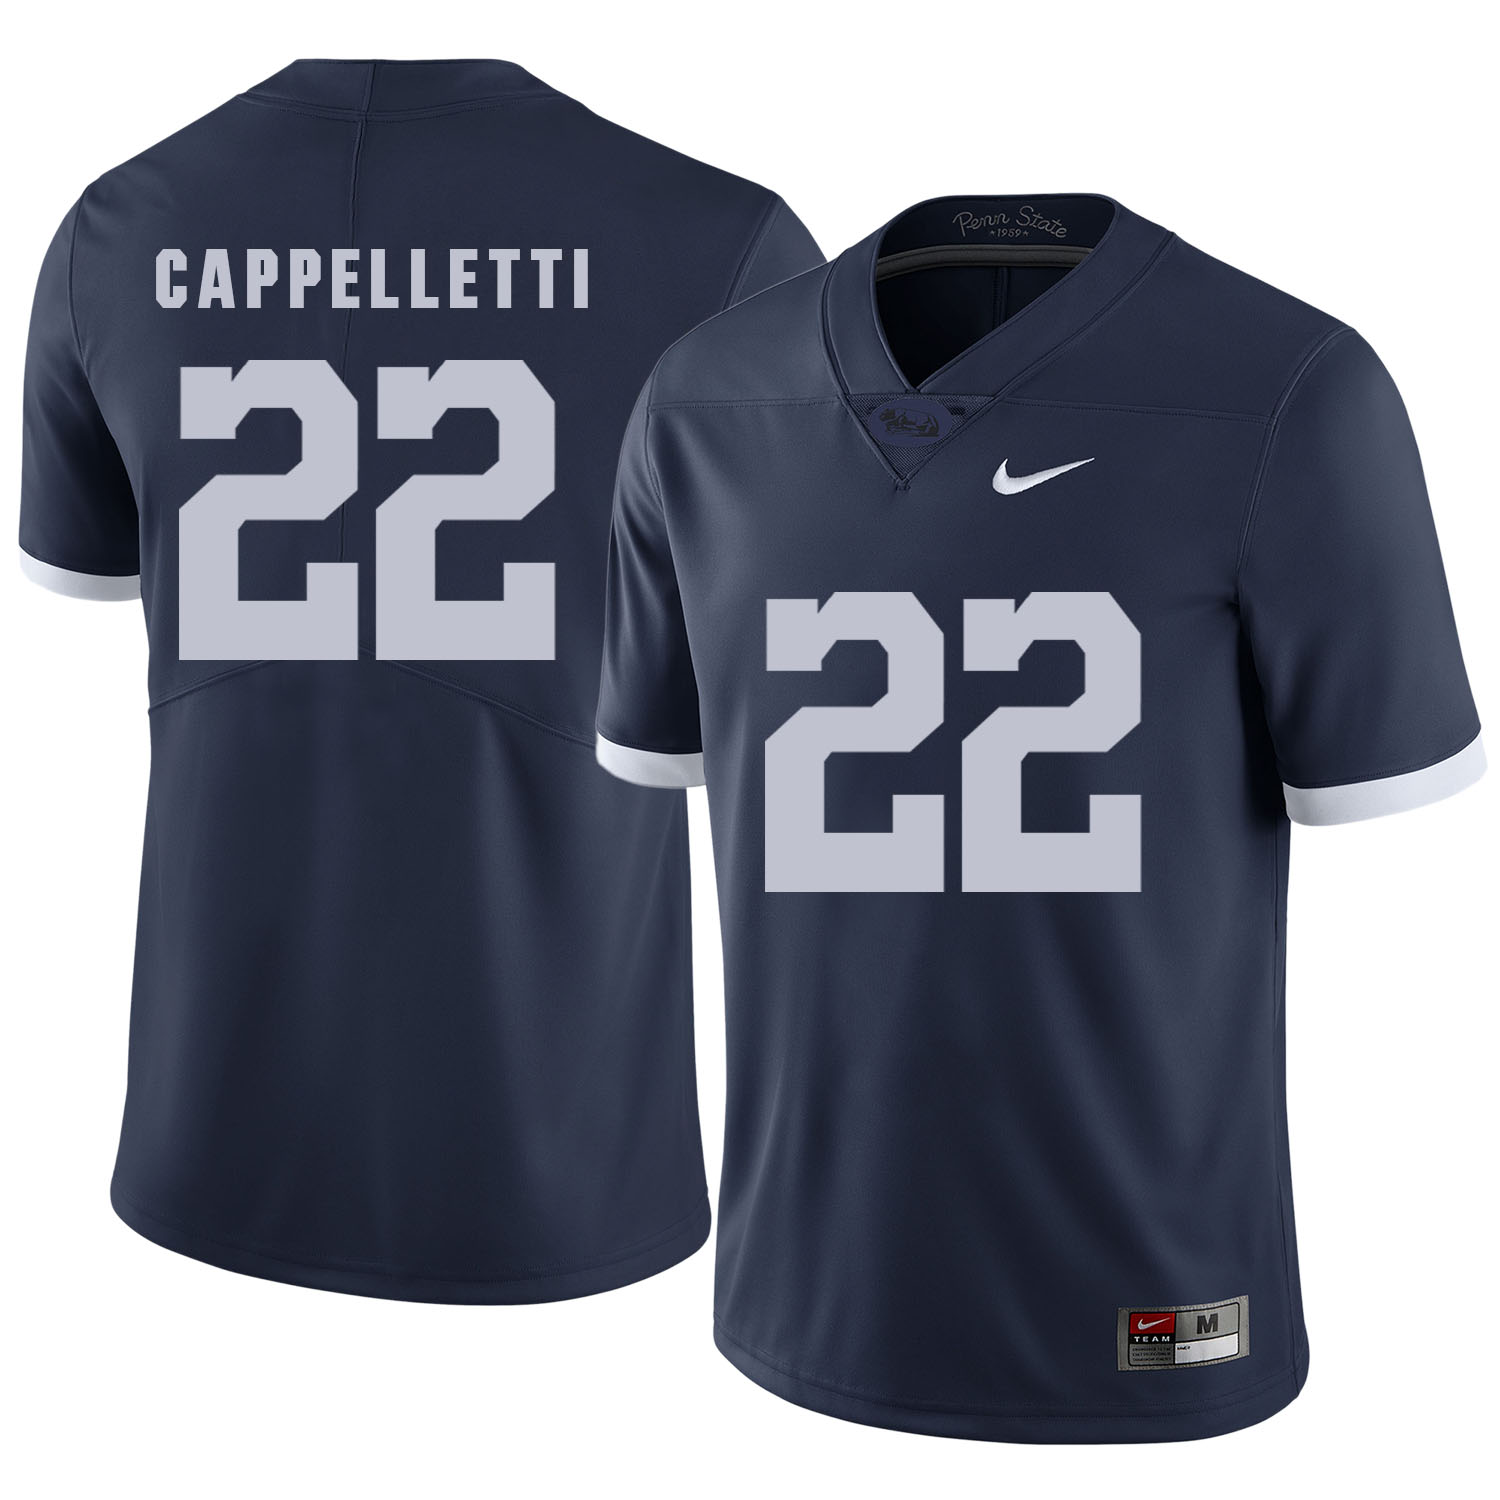 Penn State Nittany Lions 22 John Cappelletti Navy College Football Jersey